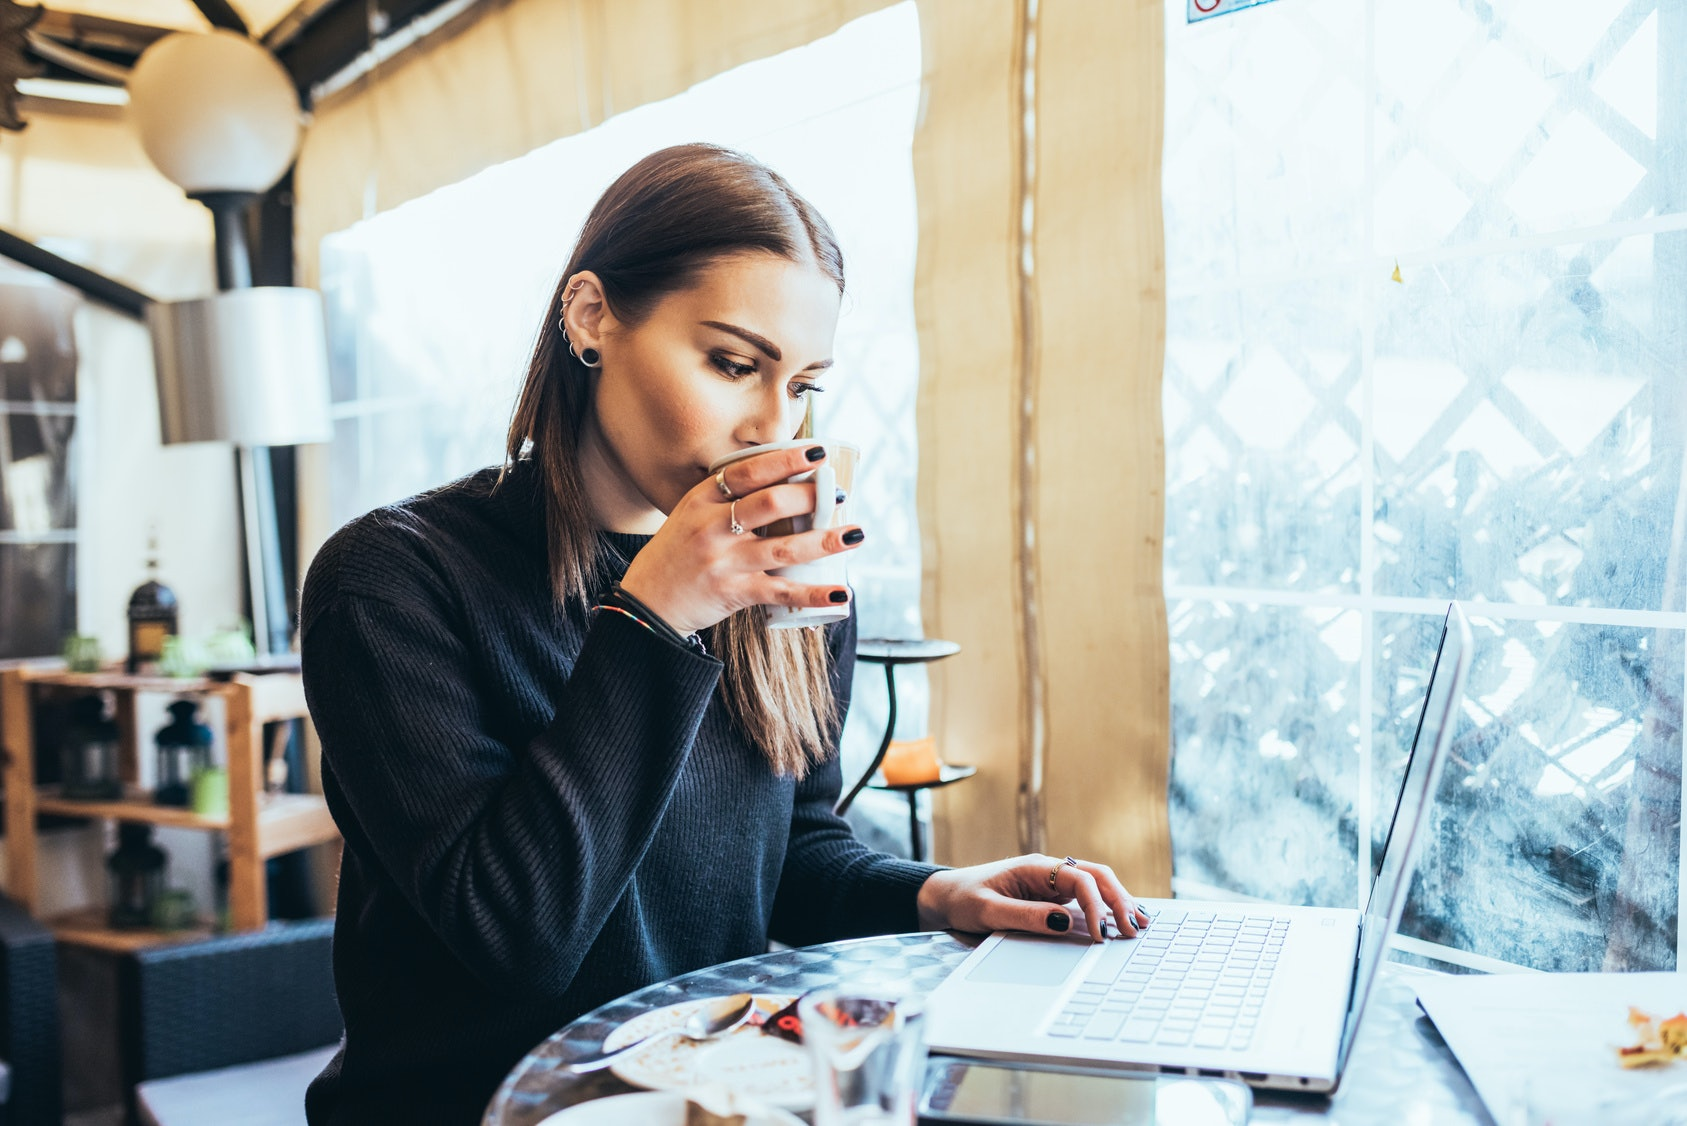 Tips for dating a workaholic